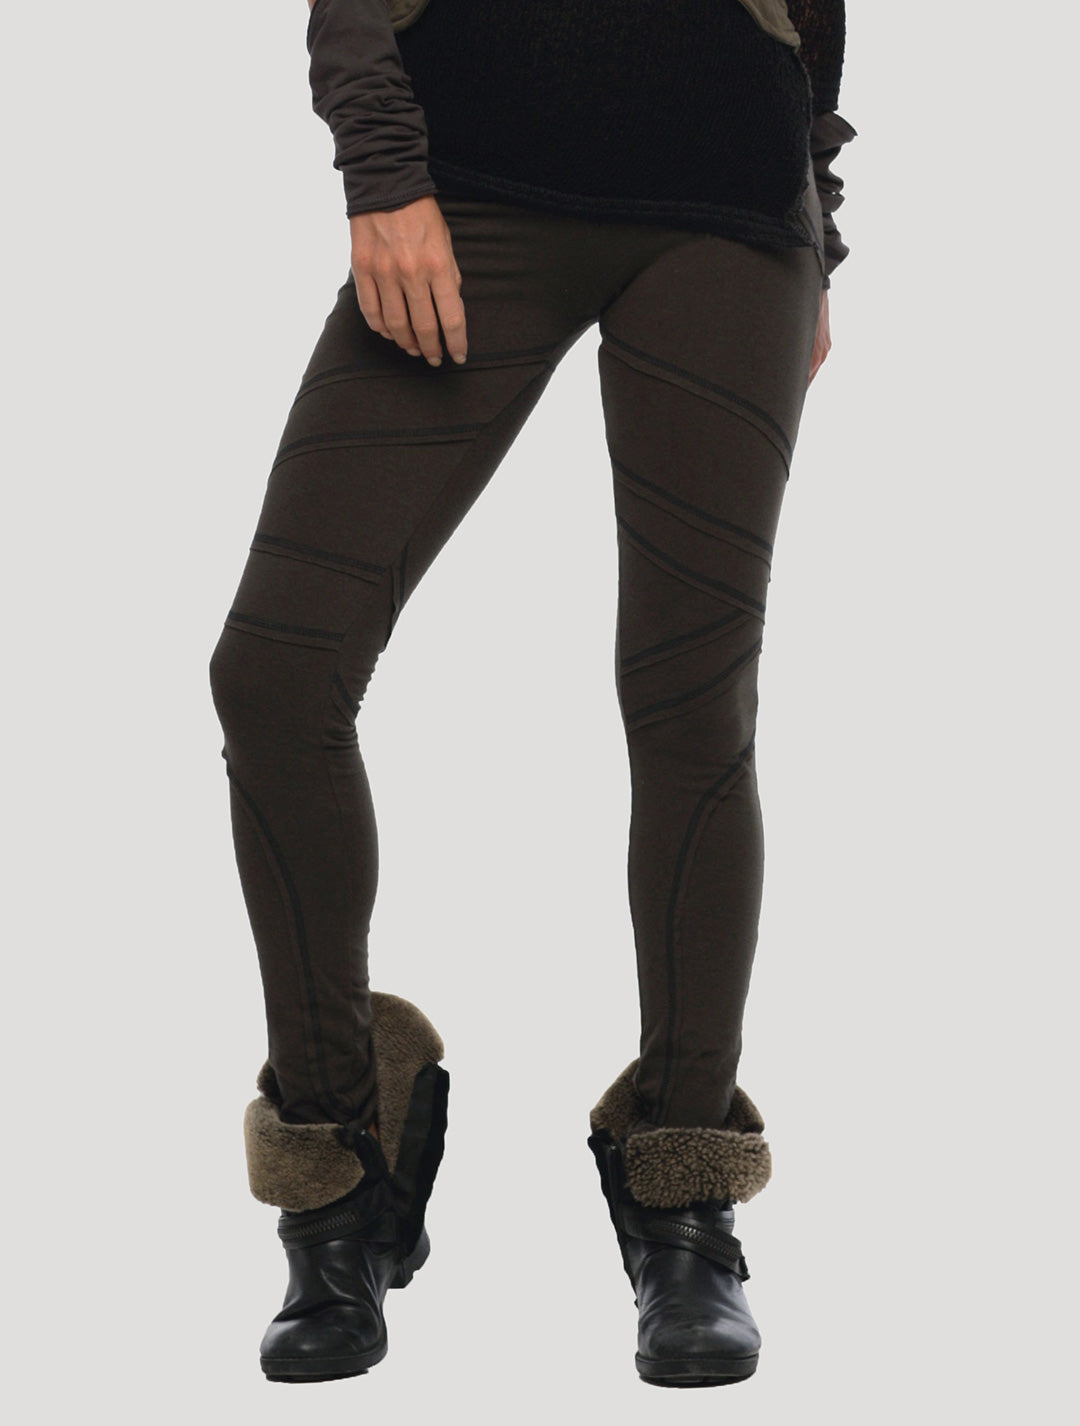 Kali Long Leggings